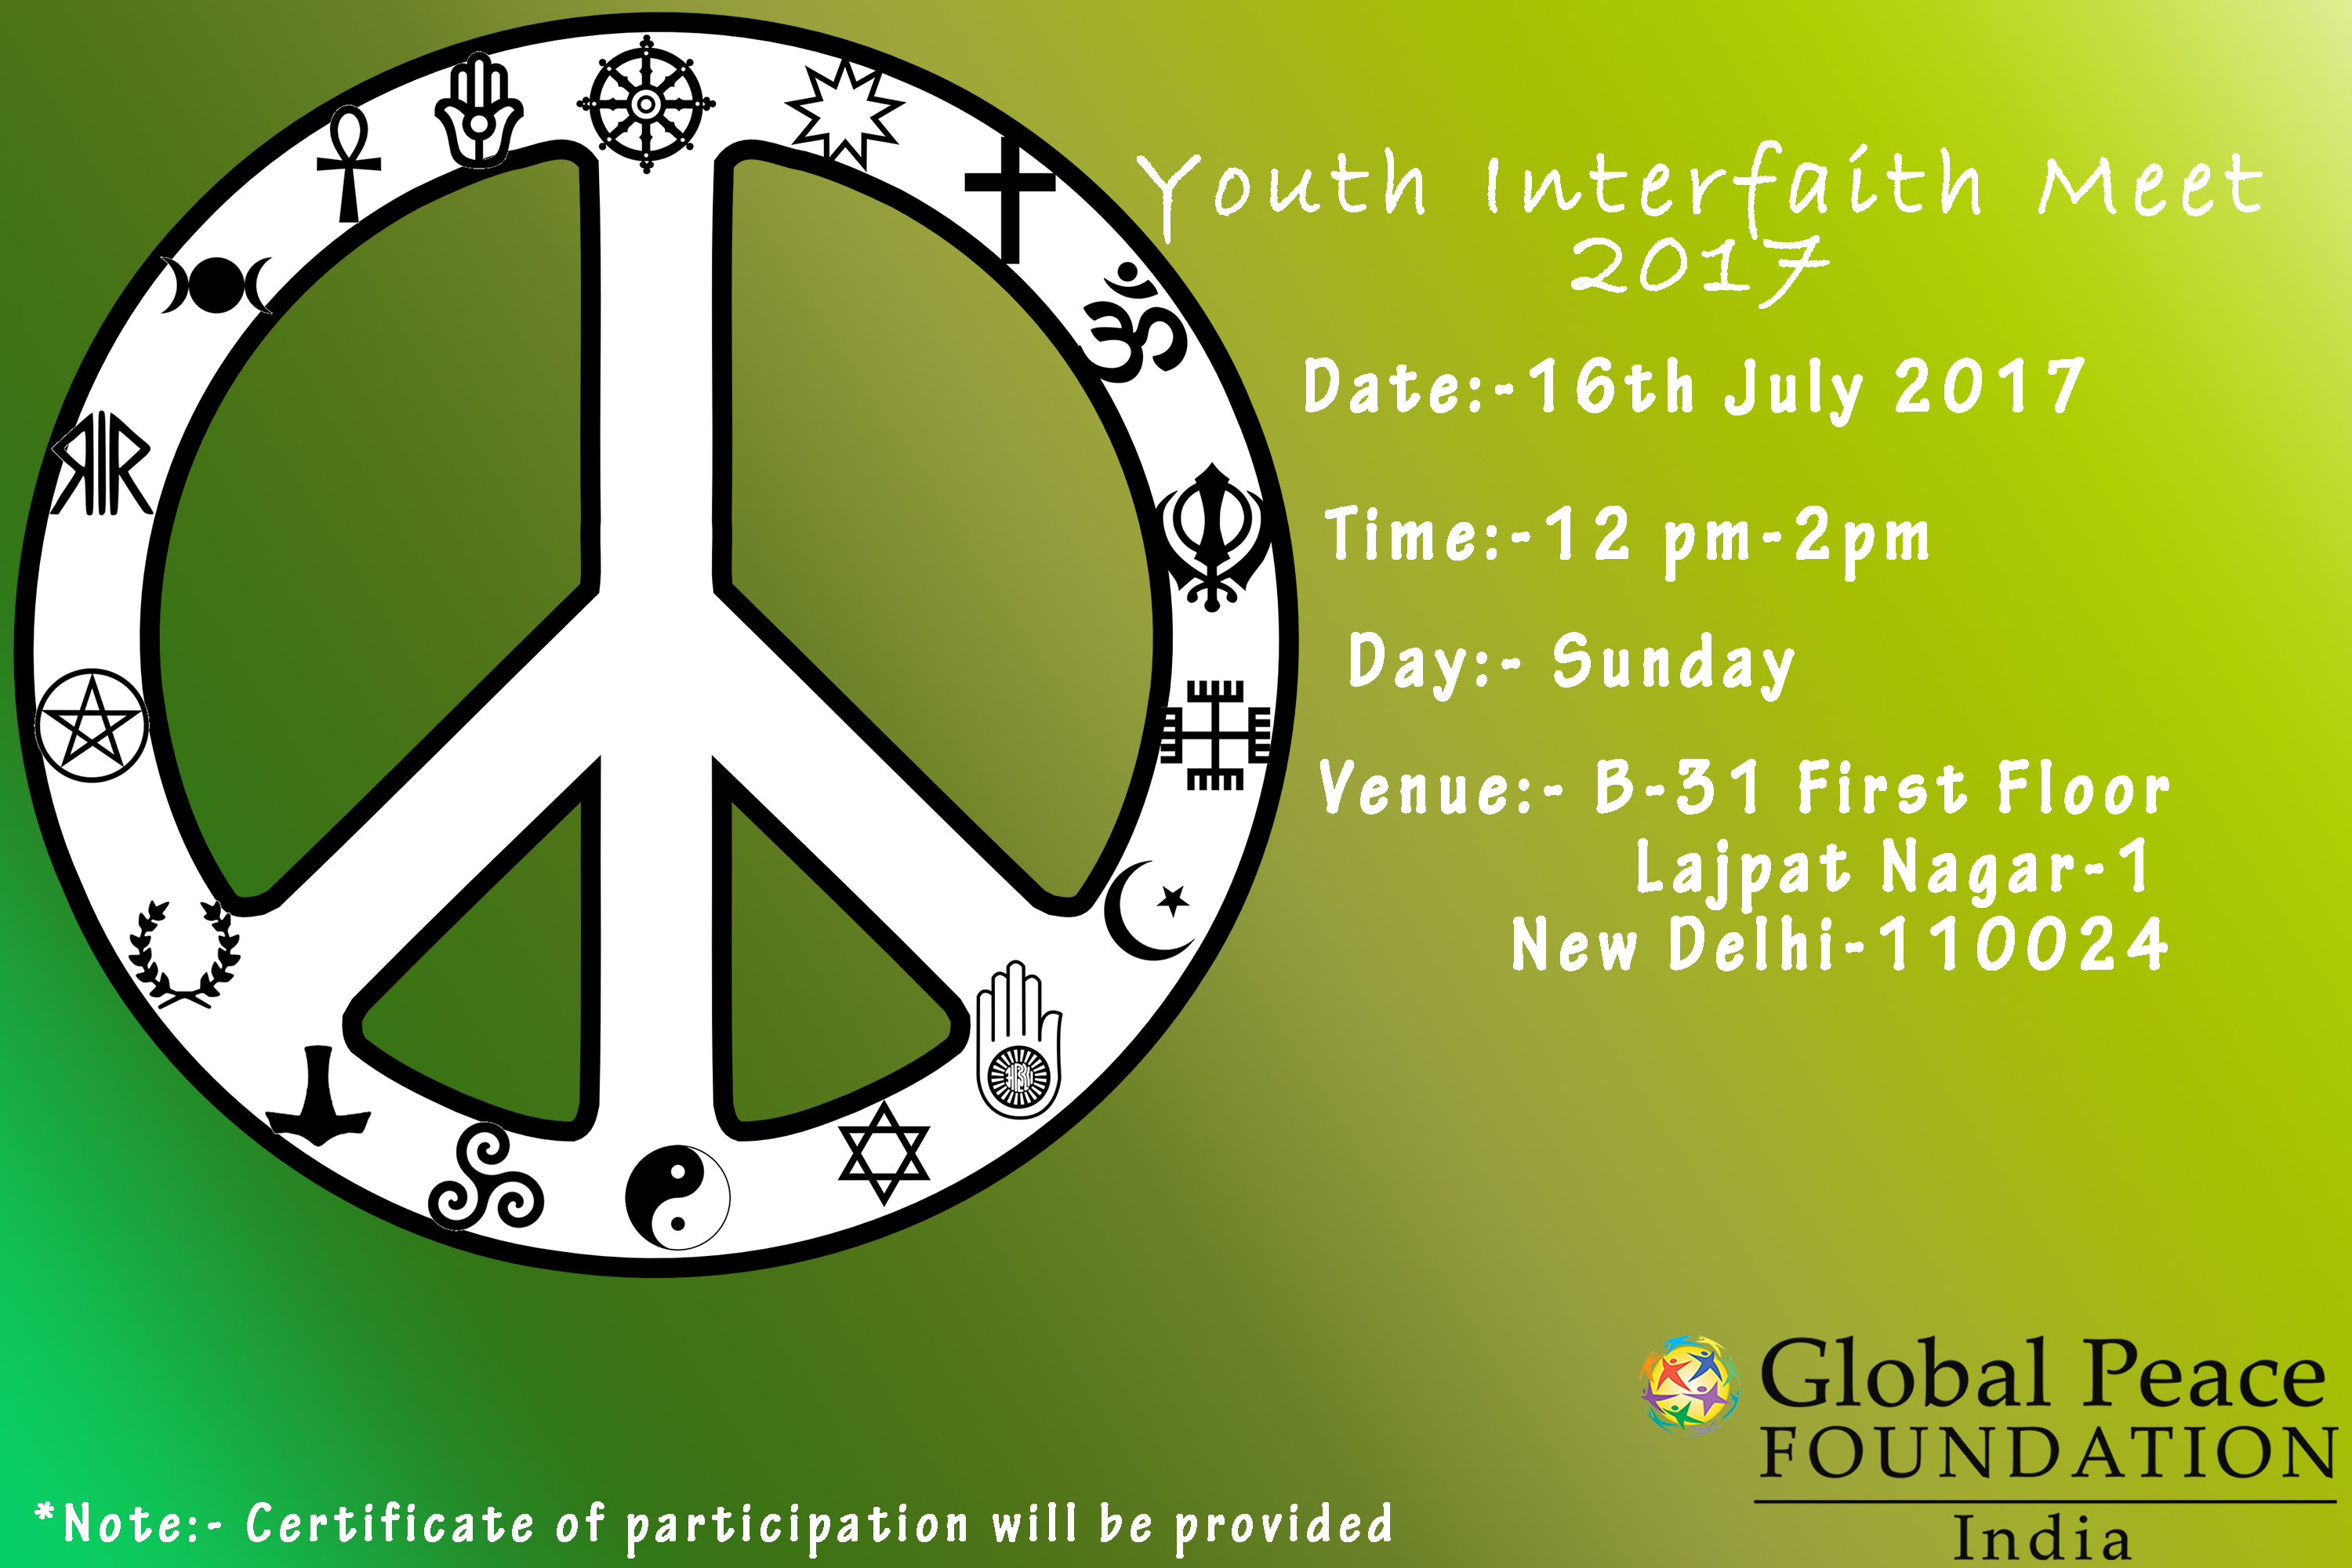 Youth Interfaith Meet